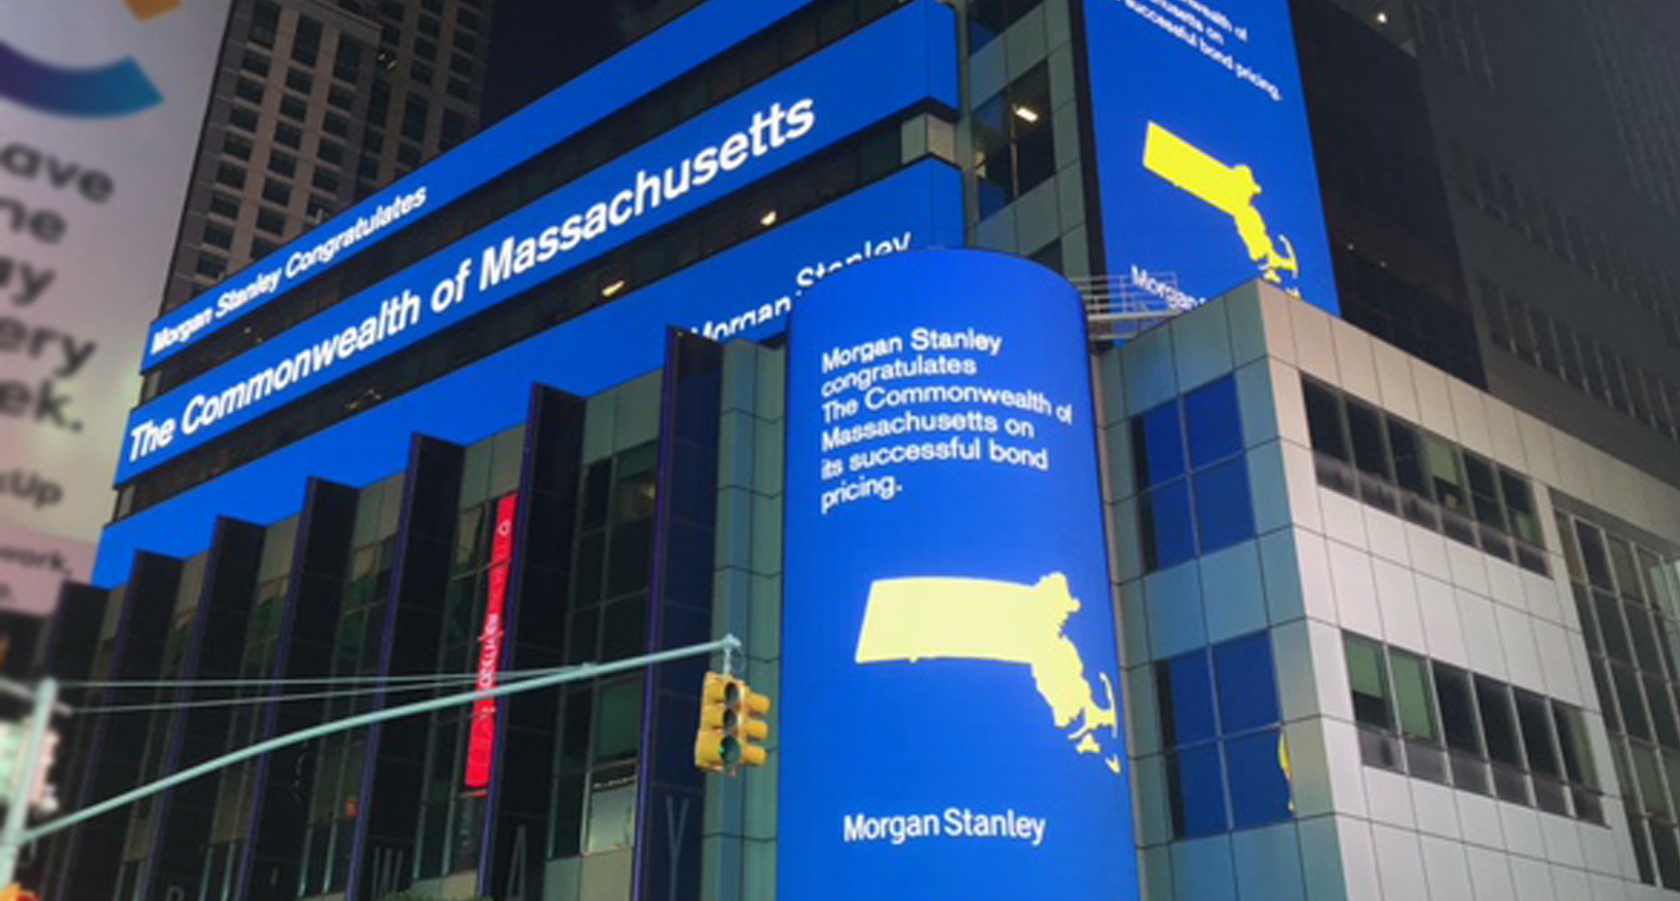 Times Square Morgan Stanley Billboard at Night Advertising Commonwealth Sale